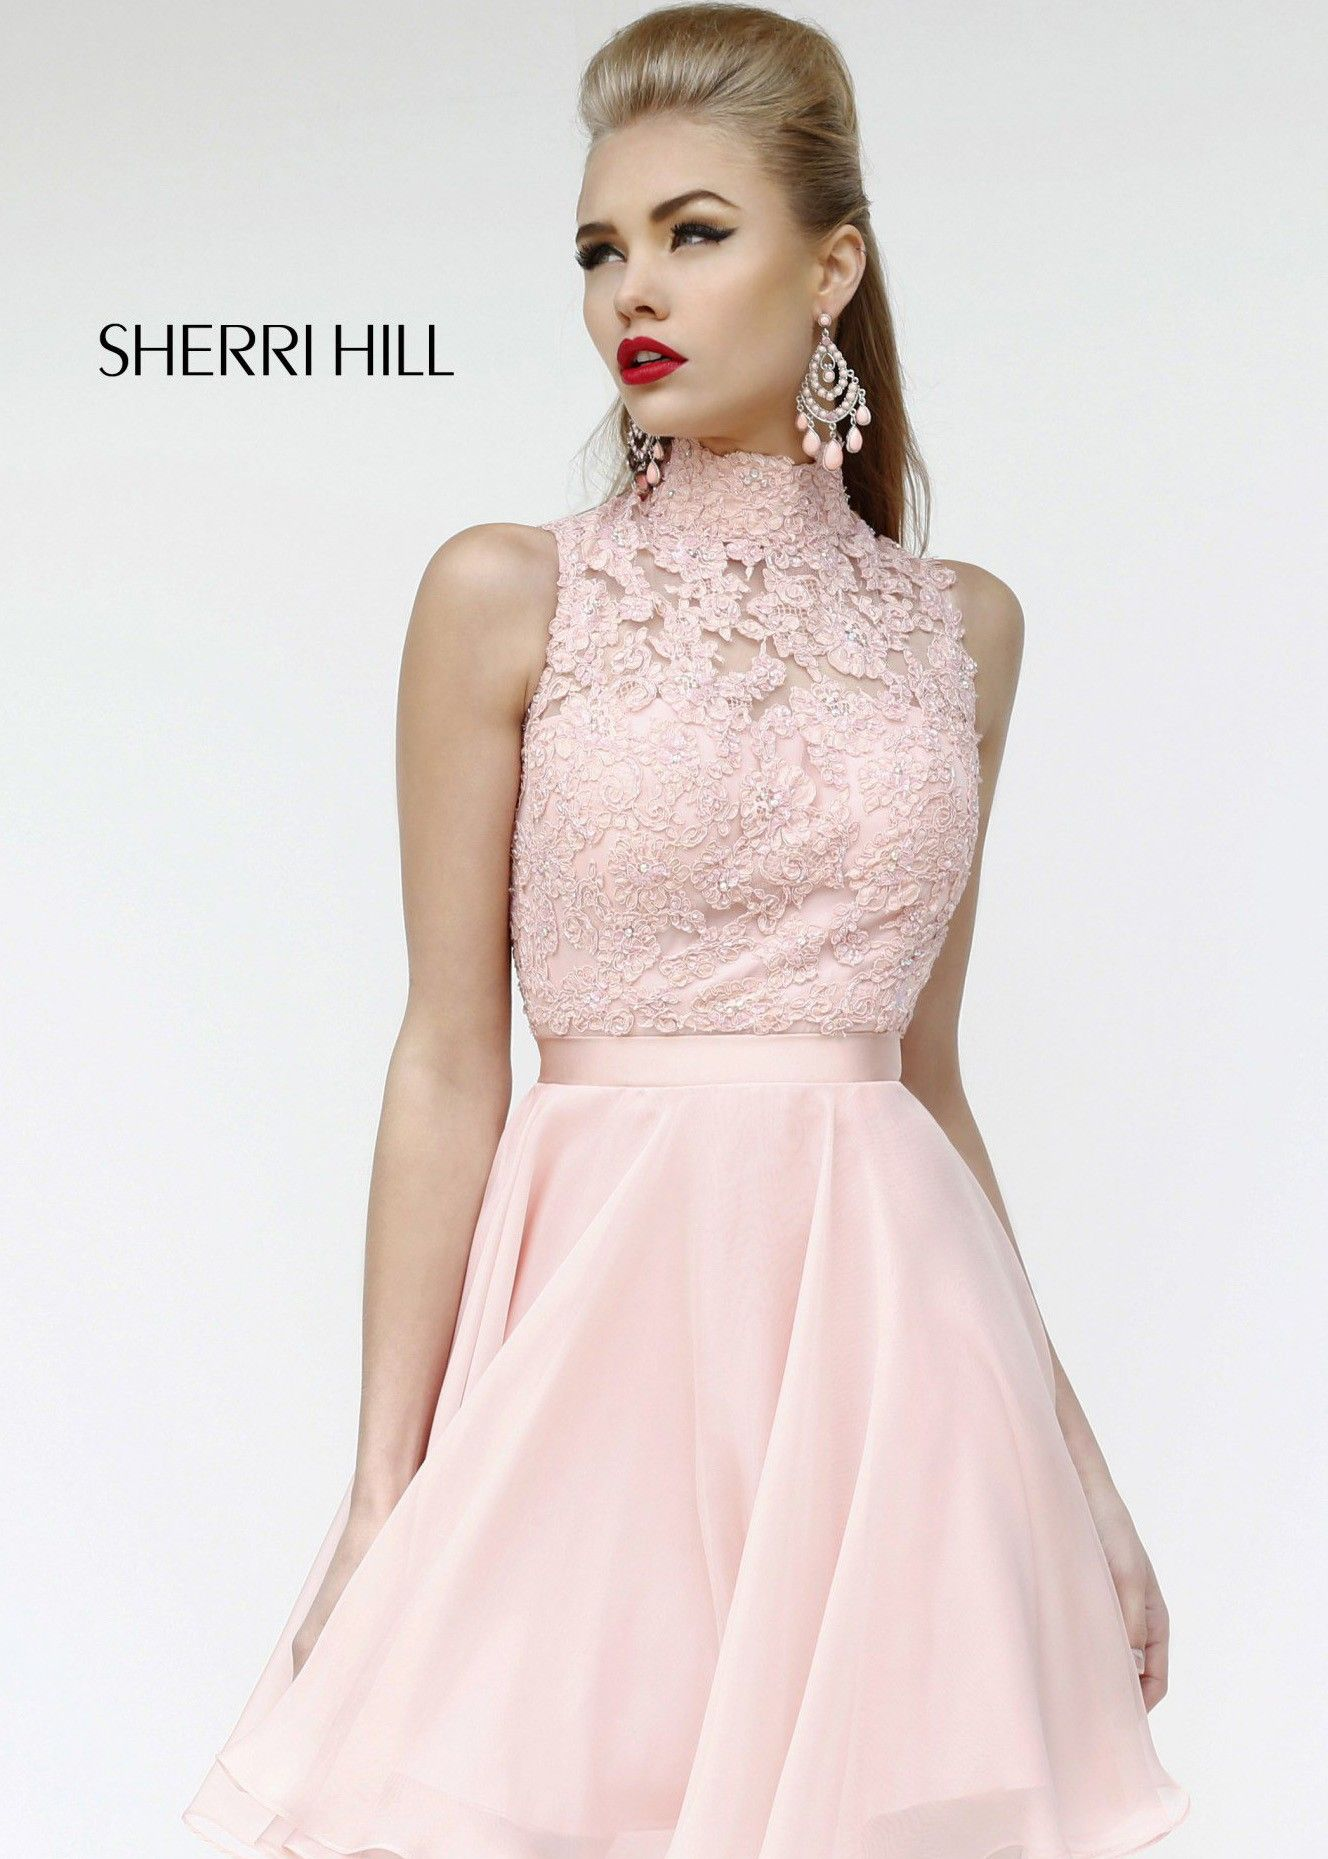 Short prom style wedding dresses  Sherri Hill  Lace Short Cocktail Dress A perfect summertime